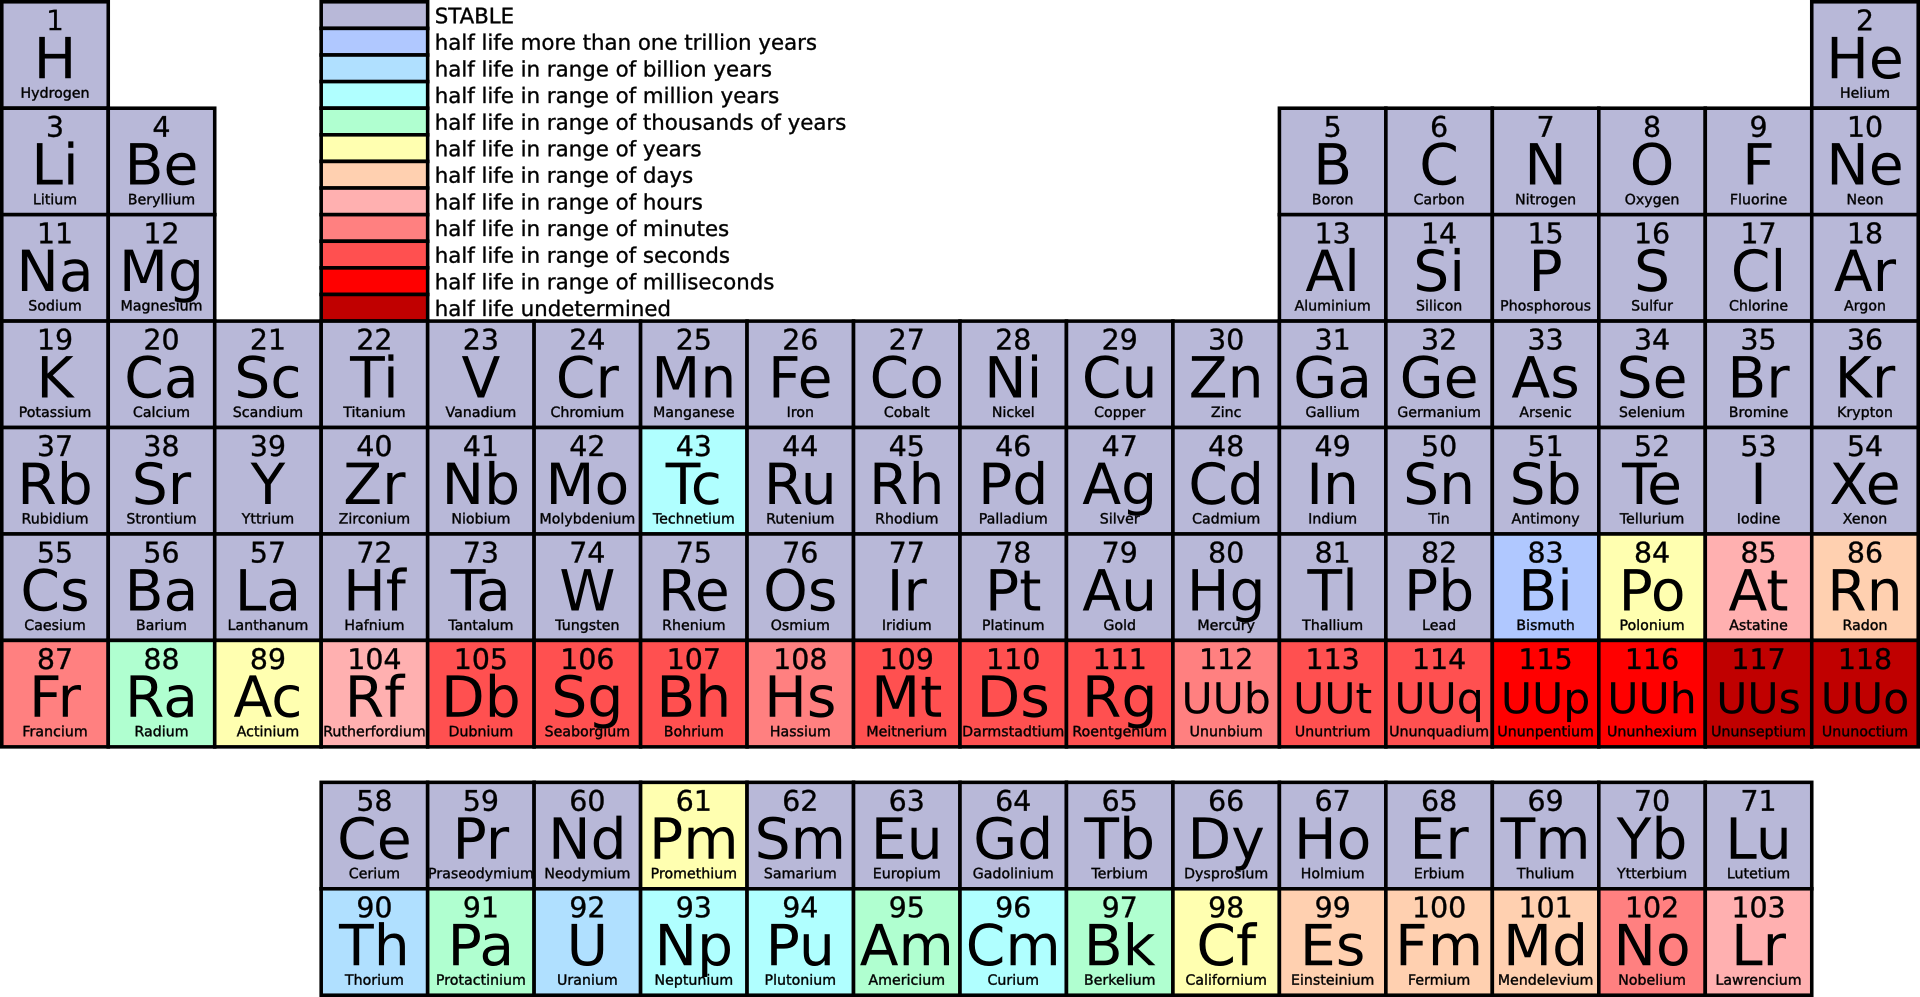 Engage naming compounds 2 uths demo course this is an image of the periodic table urtaz Choice Image